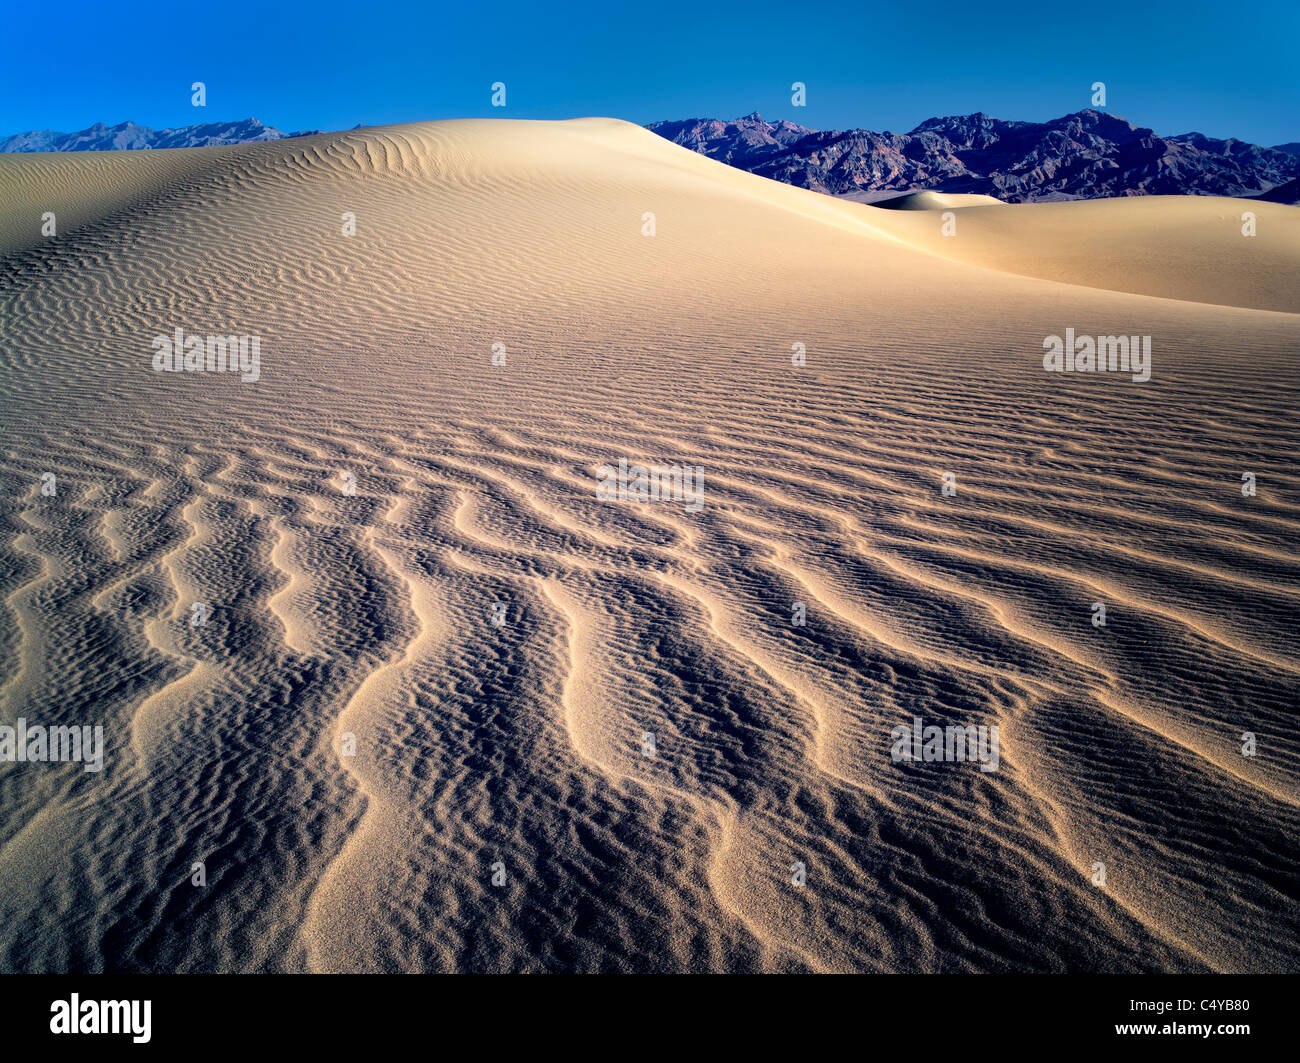 Muster im Sand nach intensiven Sturm. Death Valley Nationalpark, Kalifornien Stockbild